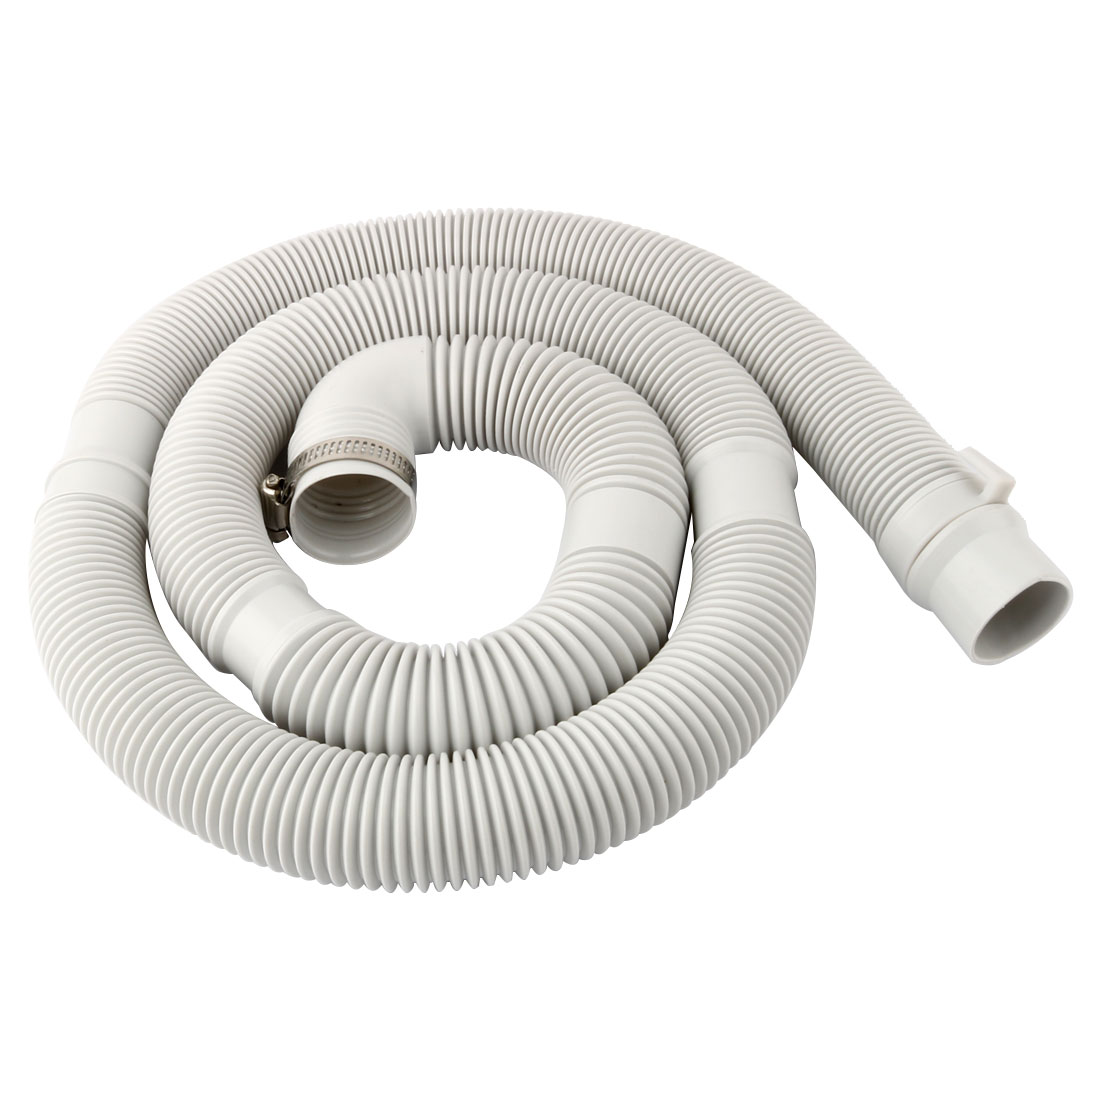 Washing Machine Water Waste Drain Discharge Hose Connector White 4.75Ft Long - image 5 of 5